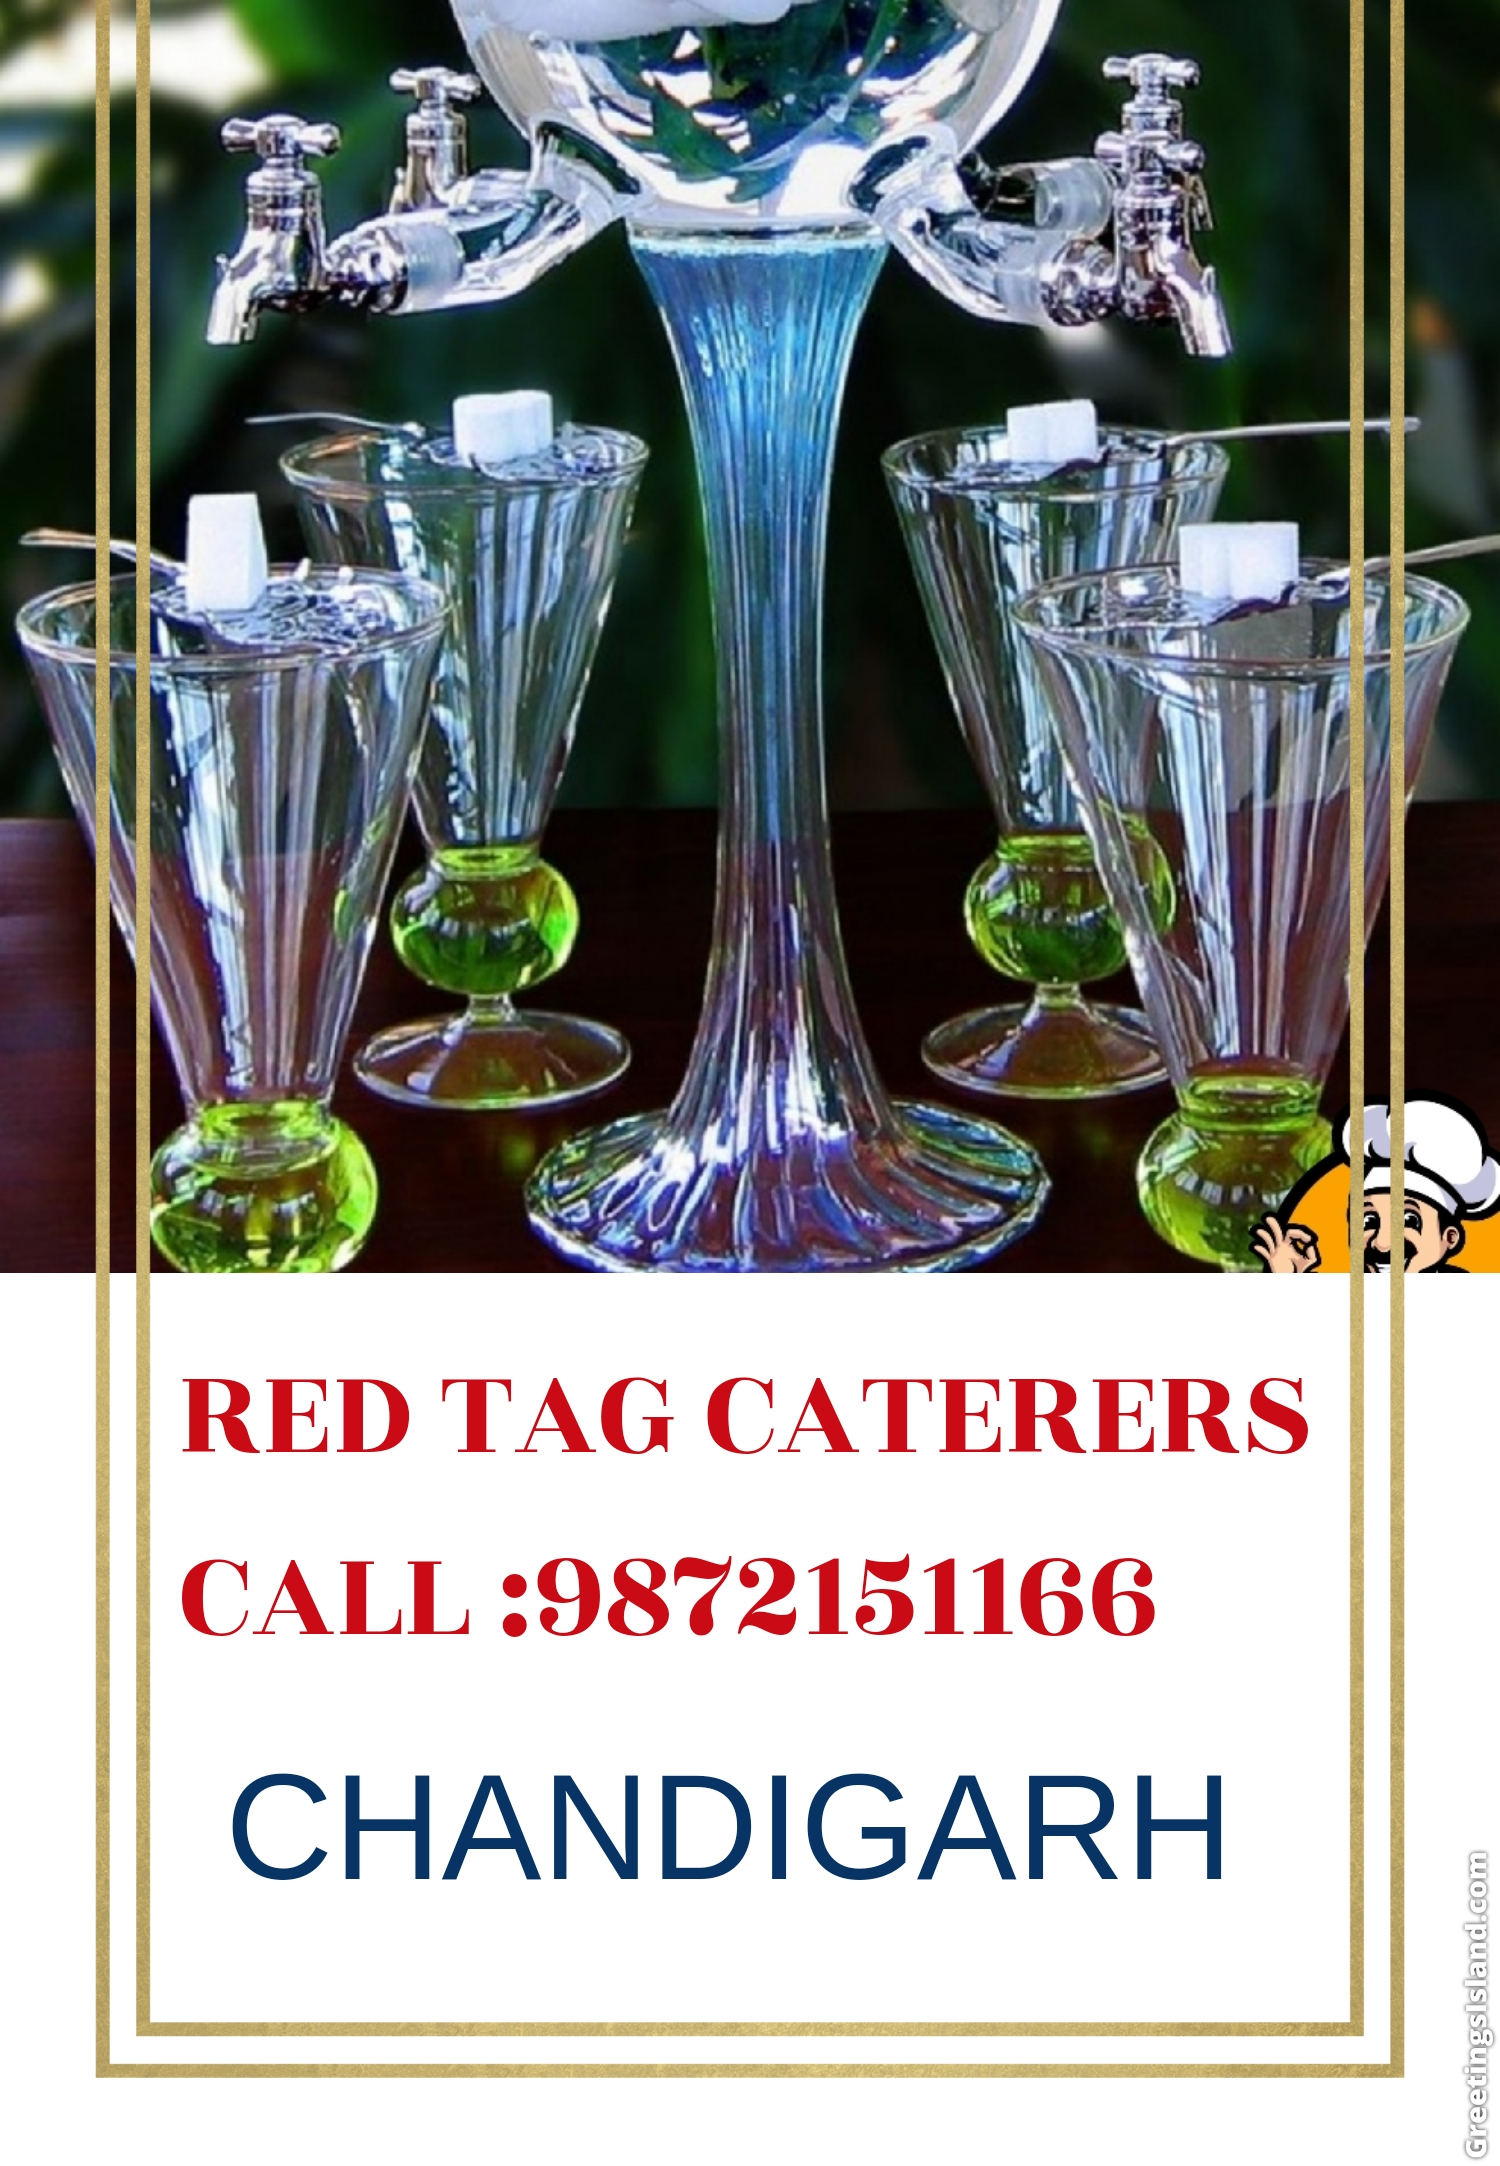 Red Tag Caterers, Exclusive outdoor caterer in Chandigarh, top 1 cater in Chandigarh, best wedding catering service in Chandigarh, premier catering service in Chandigarh